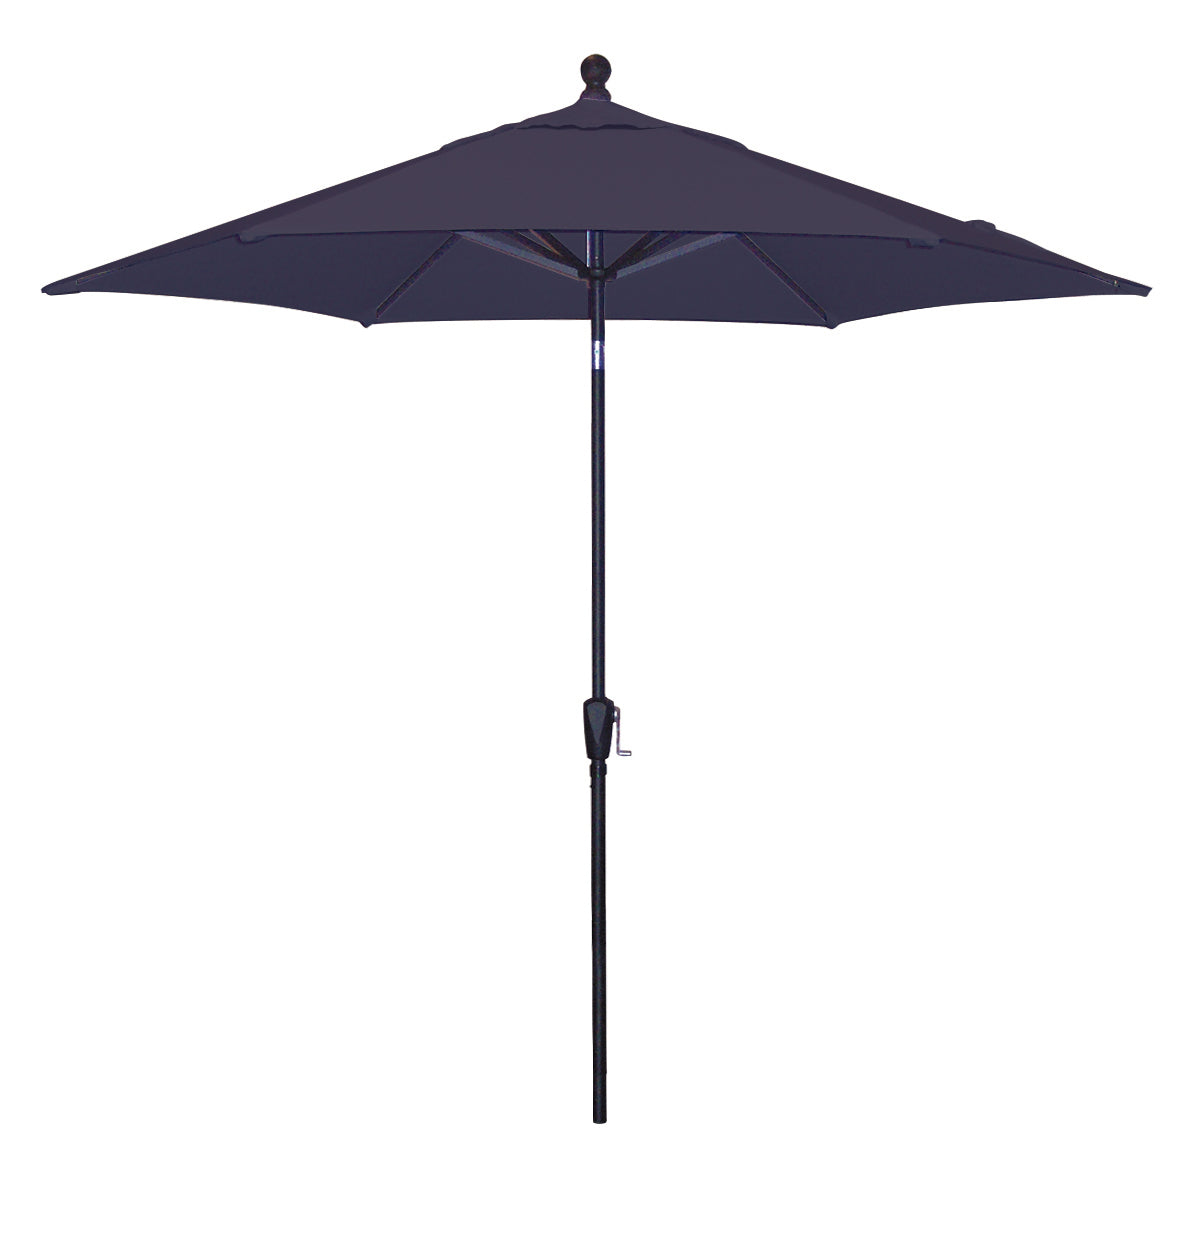 9 Ft Push Button tilt Market Umbrella <br> Bronze Aluminum Frame <br> Assorted Color Options